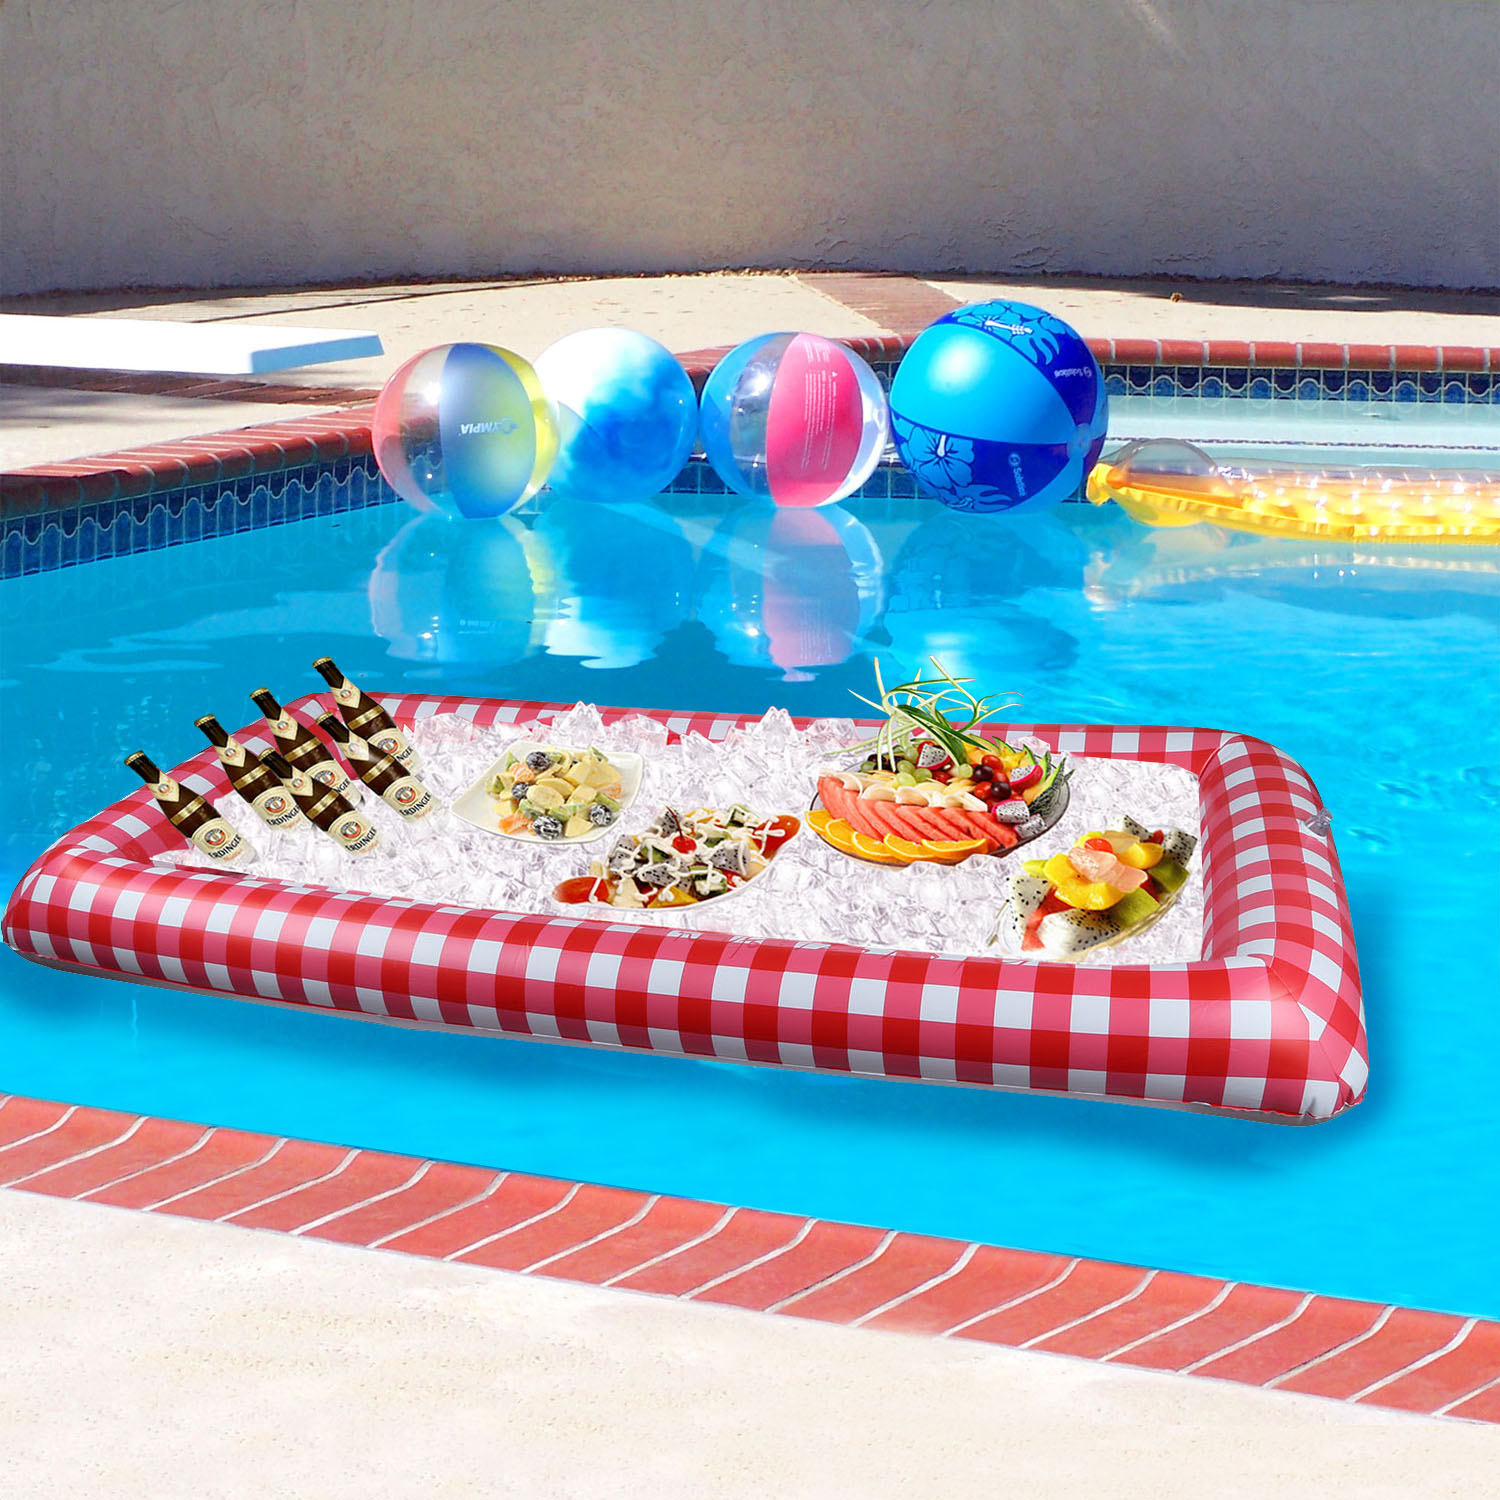 iMounTEK Inflatable Ice Buffet Bar for Outdoor Picnics/Parties/Get Togethers/Pools (Portable Serving Bar, Blow Up, Lightweight, Pump Included, Classic Picnic Table Look) - Checkered Pattern